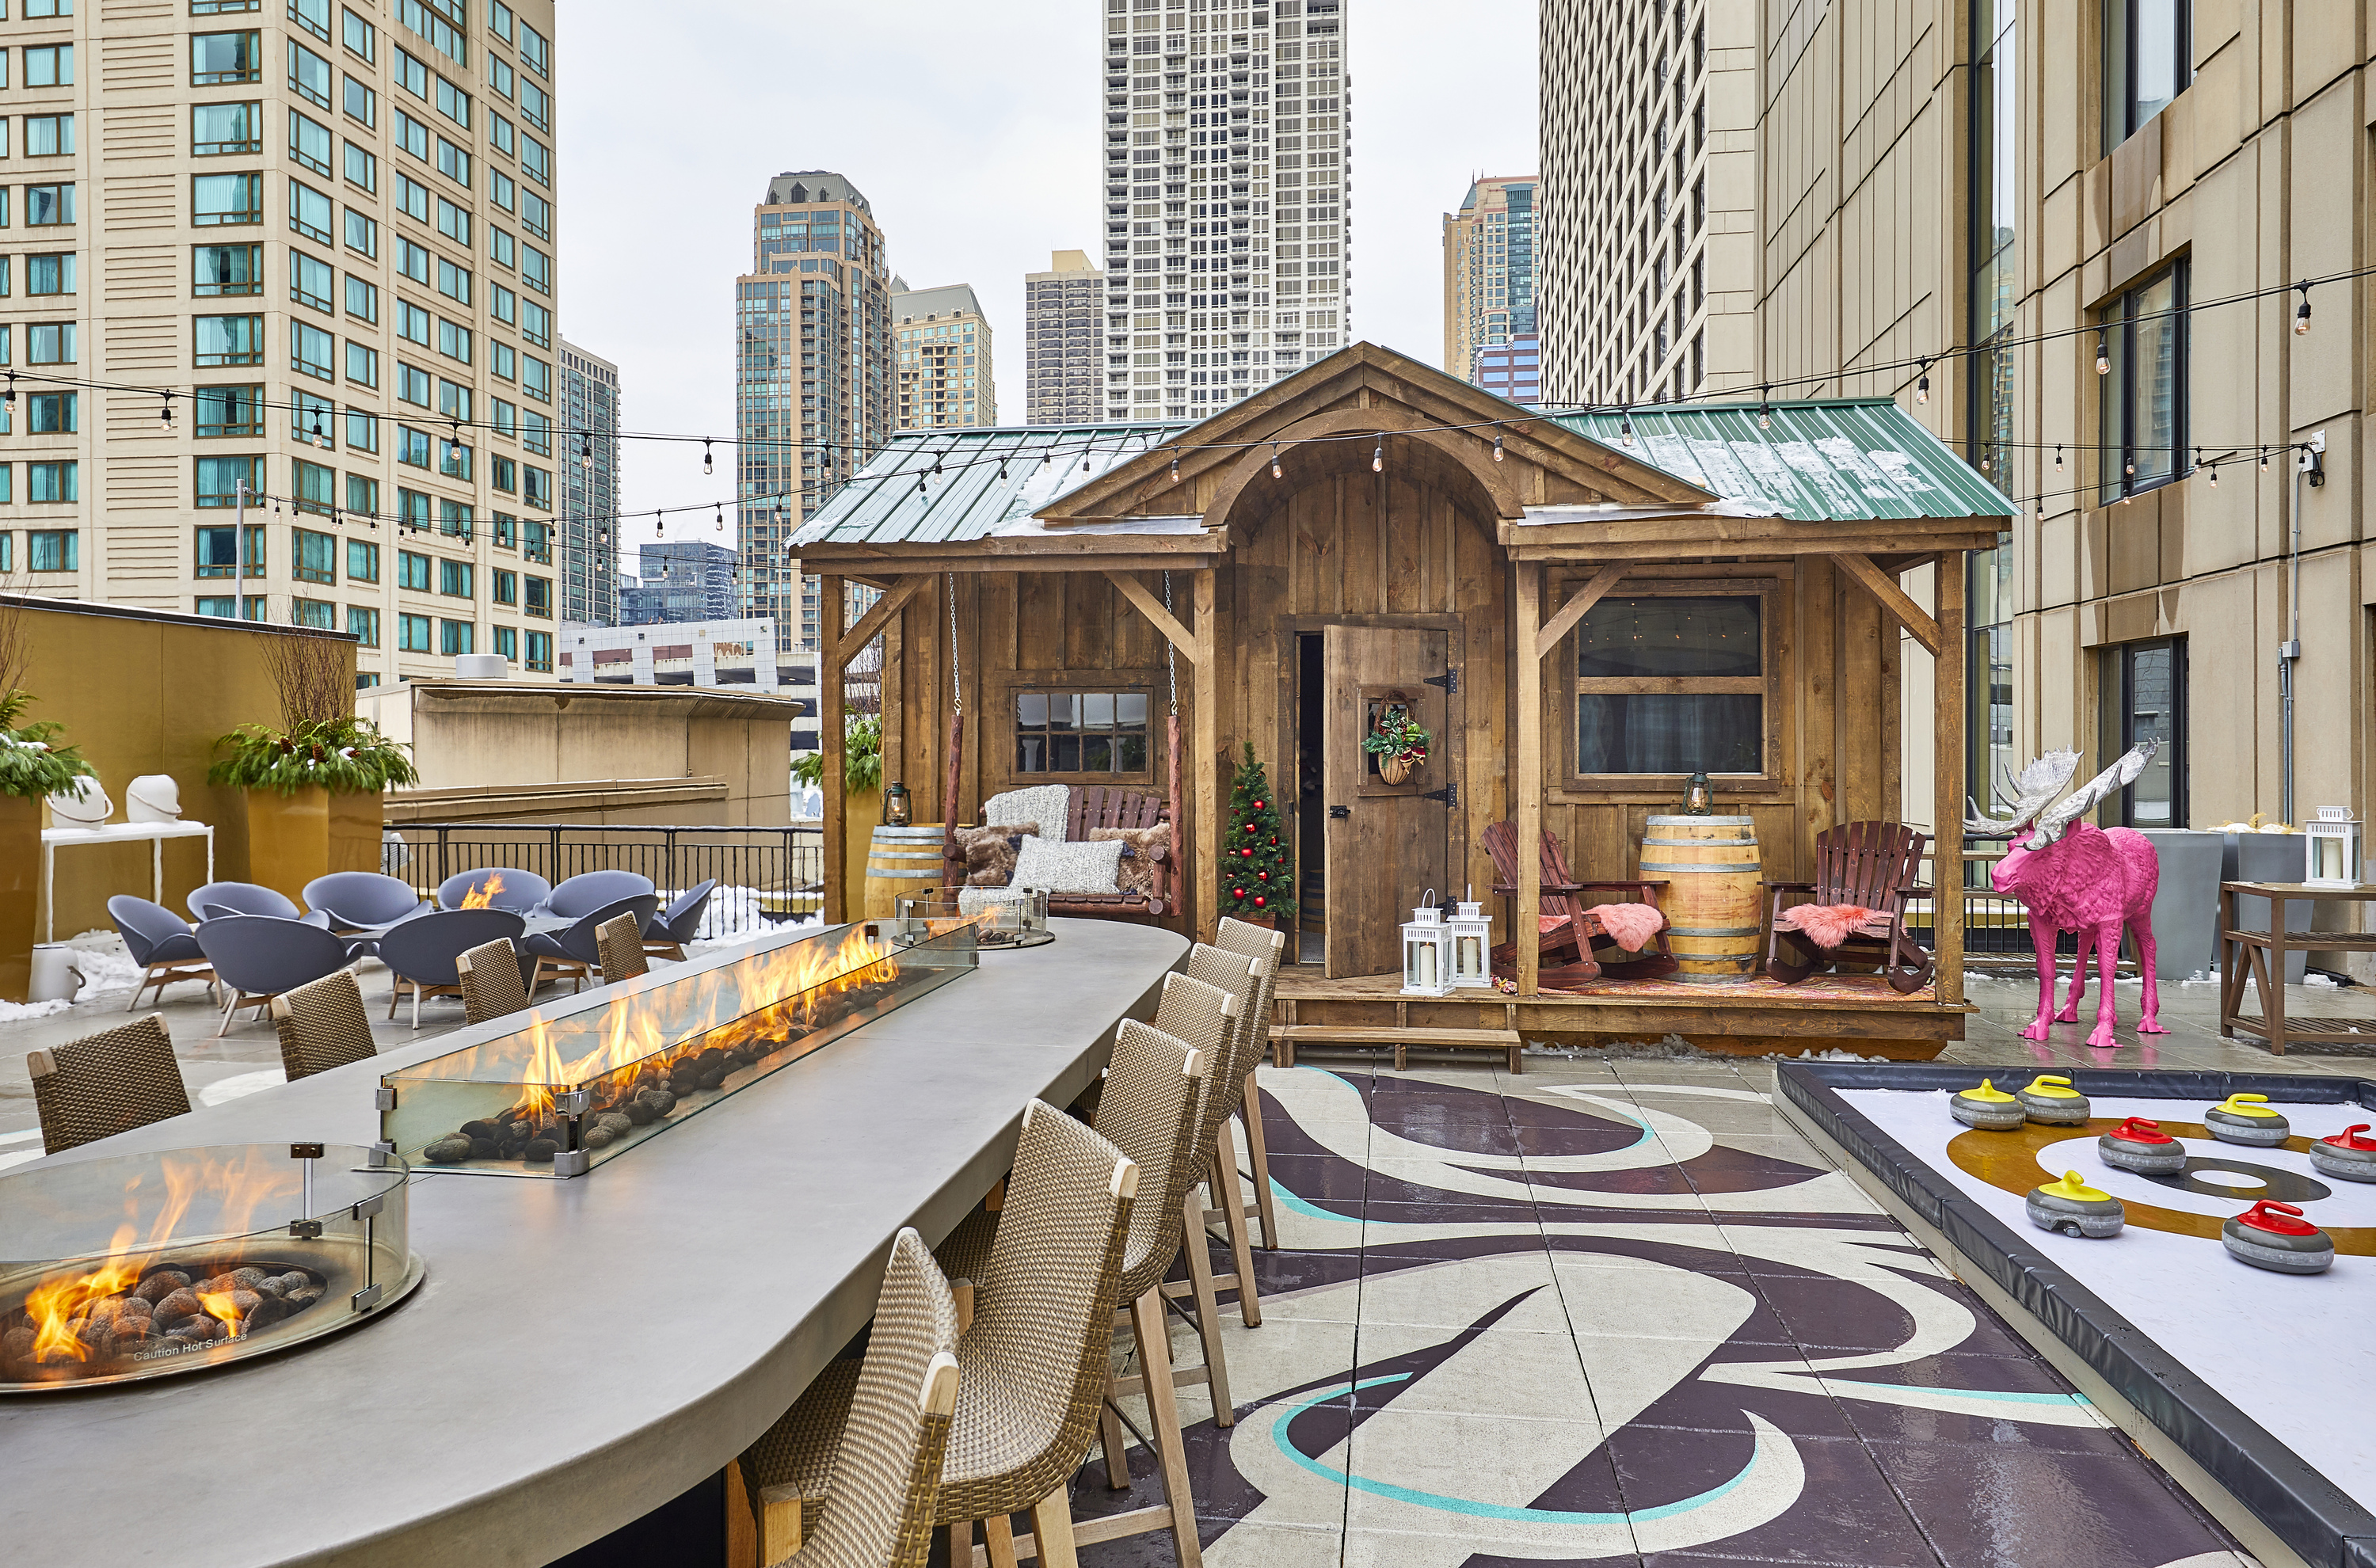 30 Chicago bars and restaurants with fireplaces